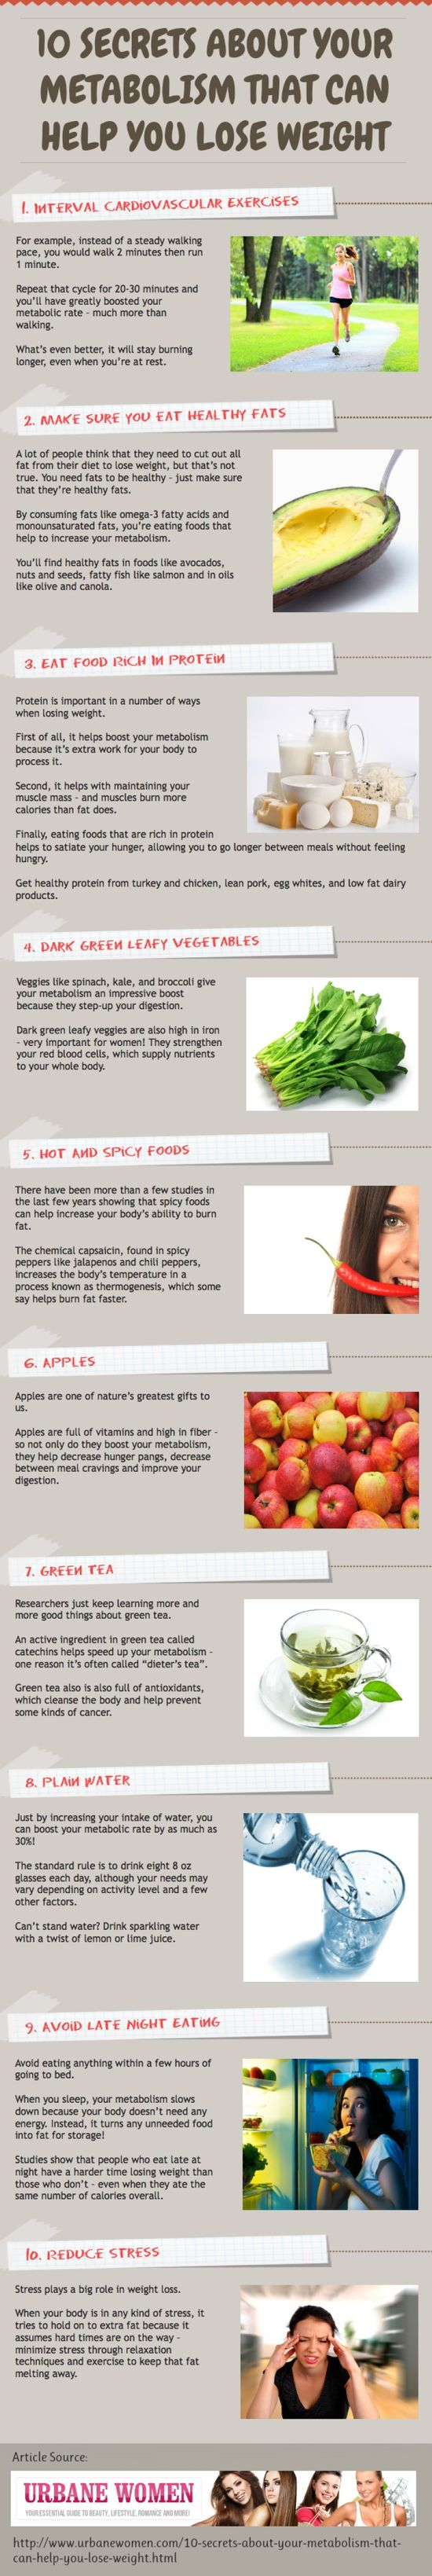 10 Secrets About Your Metabolism That Can Help You Lose Weight! [ INFOGRAPHIC ]